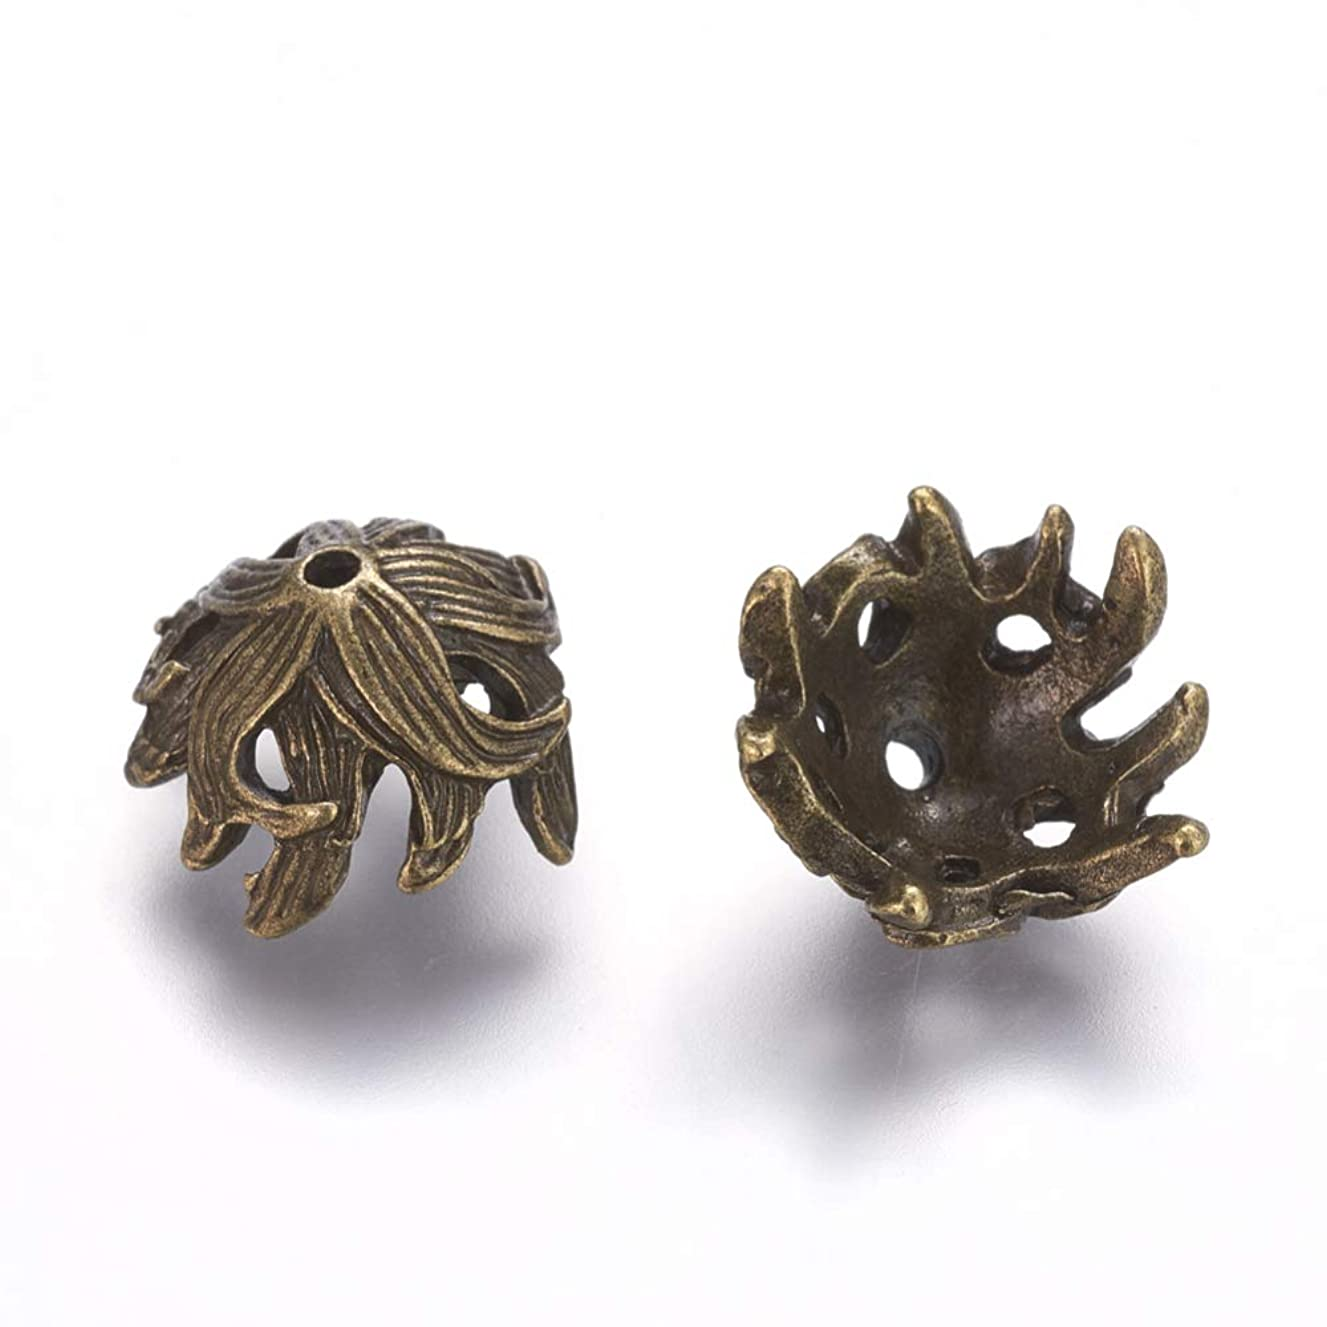 Pandahall 50pcs 10mm Tibetan Alloy Flower Petal Spacer Bead Caps Antique Bronze Lead Free and Nickel Free Antique Mini Metal End Caps for Jewelry Making